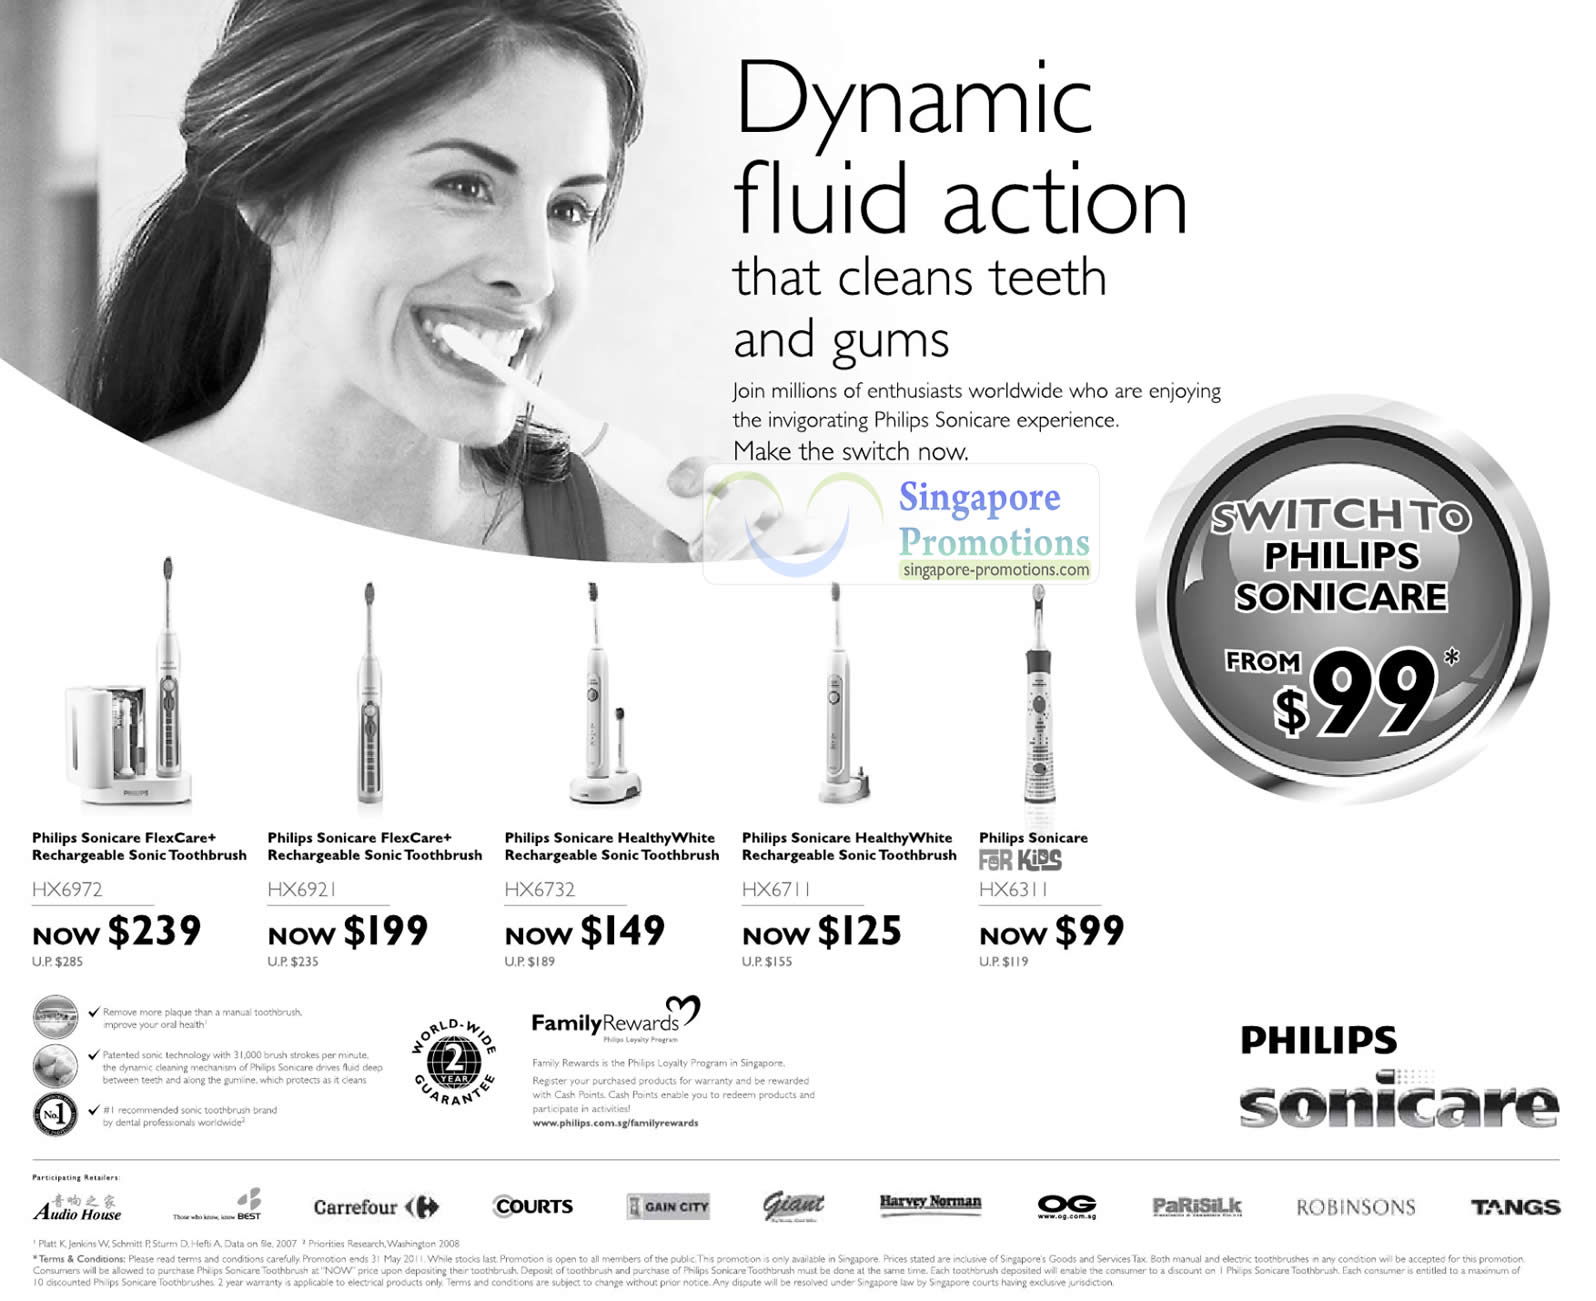 Philips Sonicare 21 Apr 2011